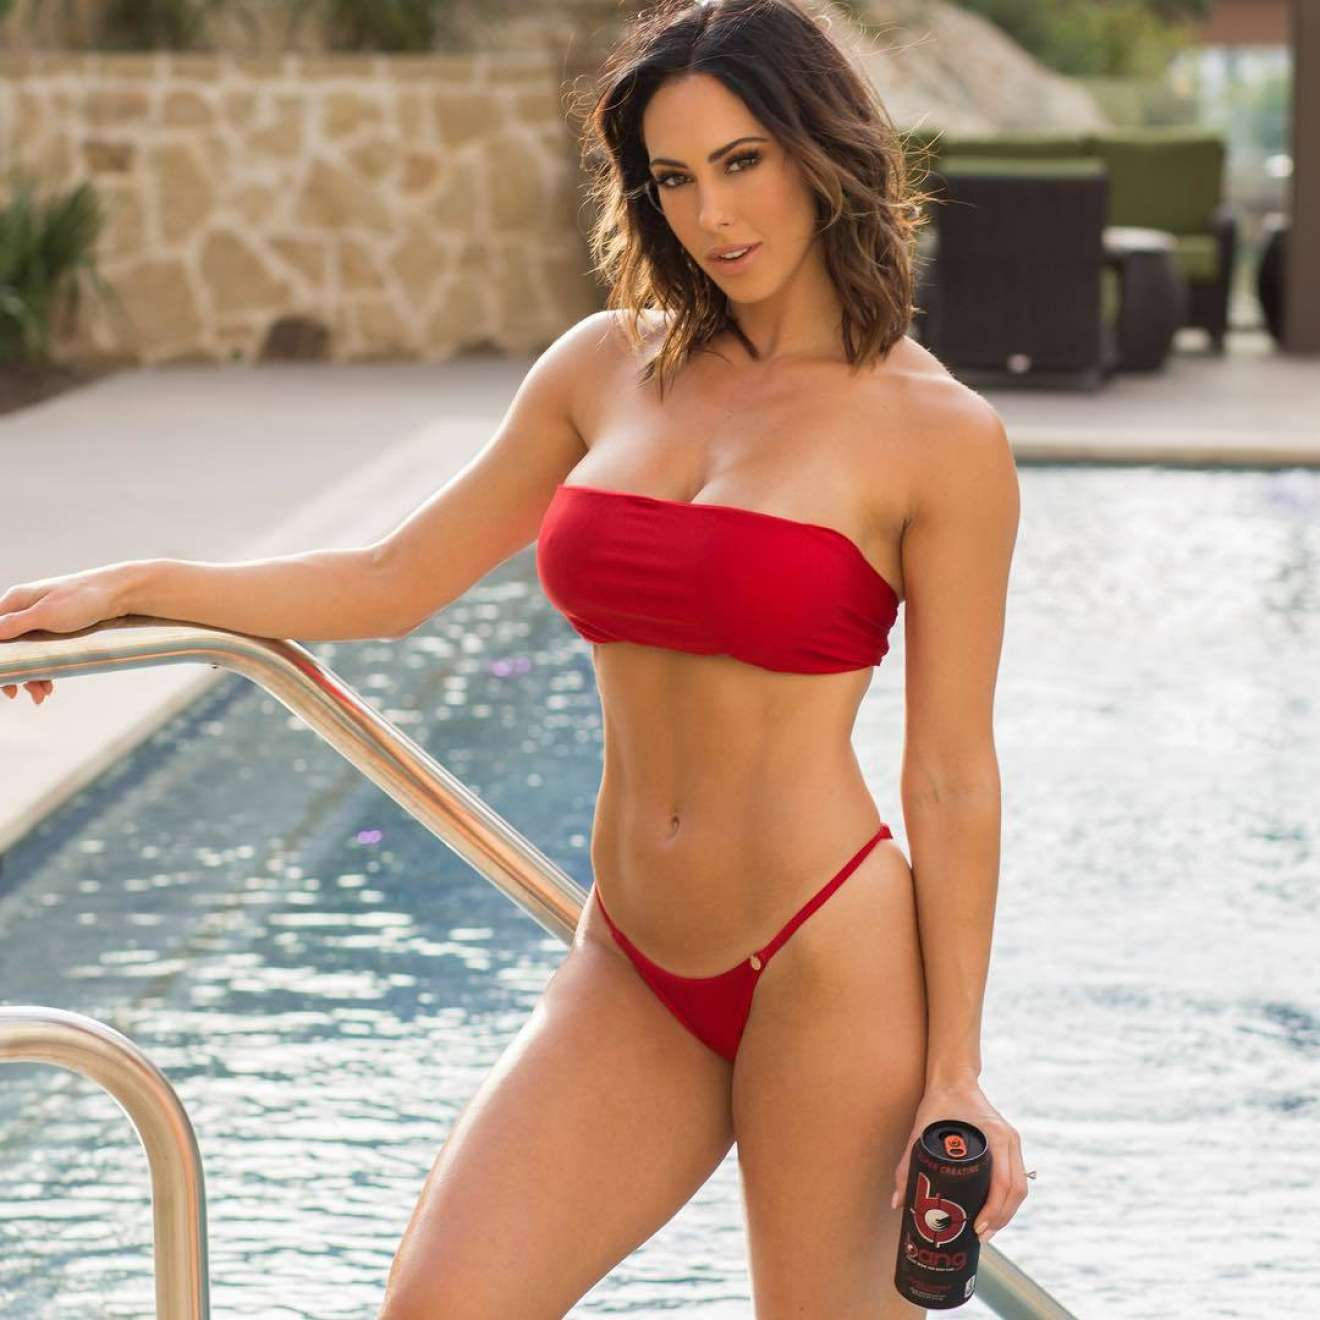 Hope Beel Hot Pics 16 GotCeleb